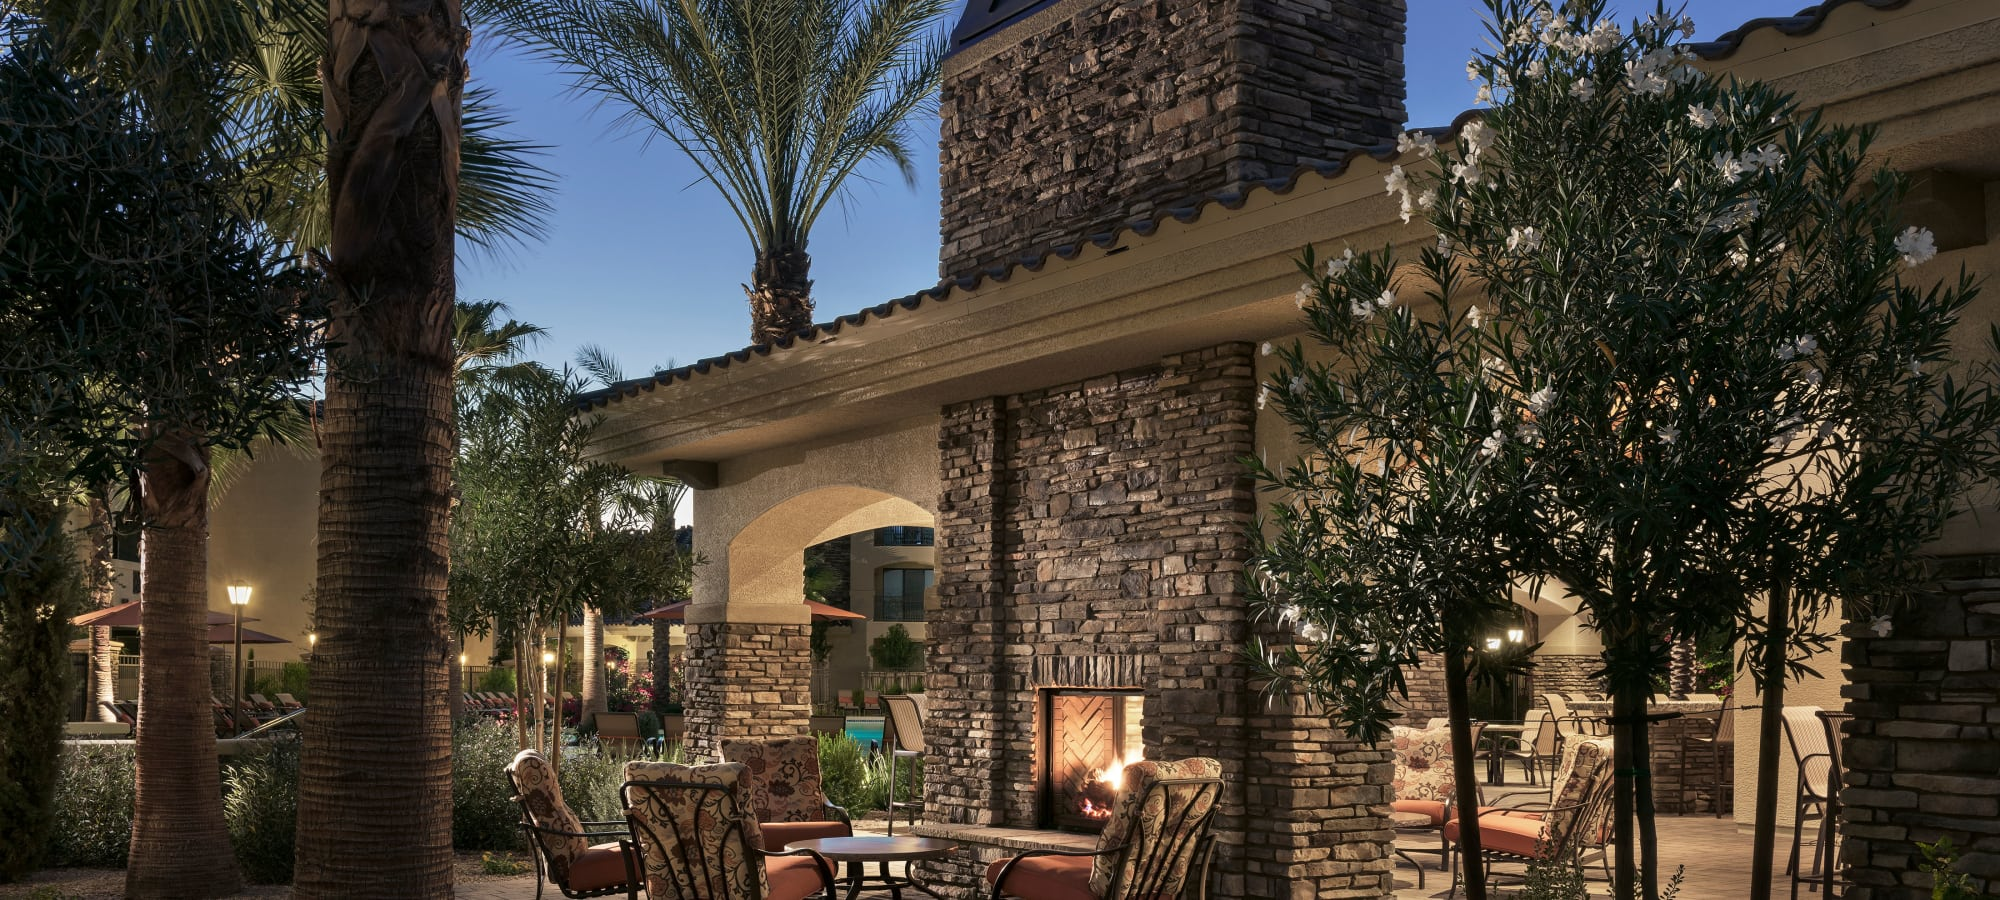 Outdoor patio at dusk at San Travesia in Scottsdale, Arizona